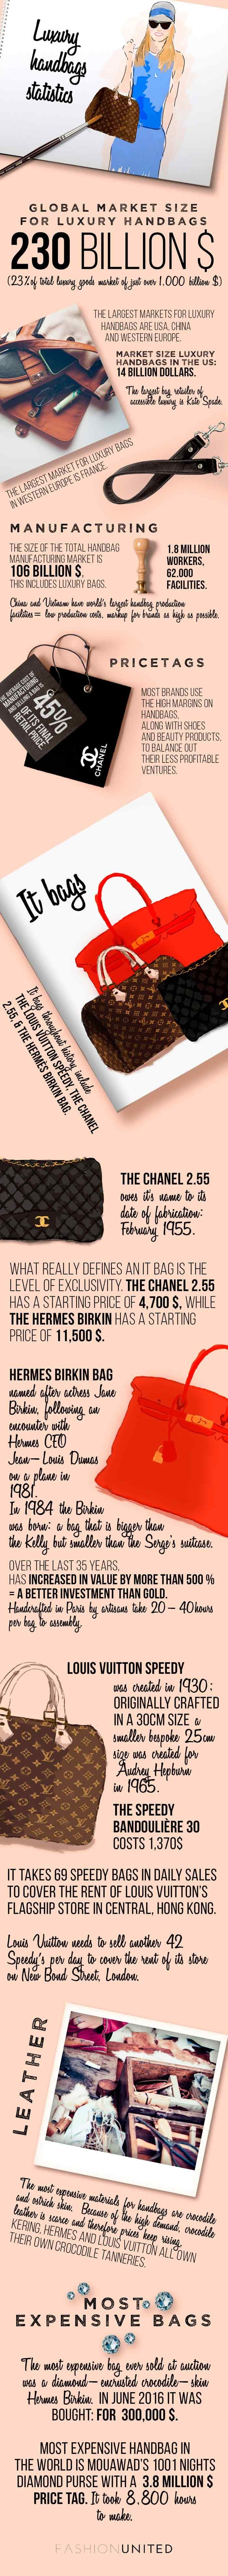 Infographic - Step inside the luxury handbag